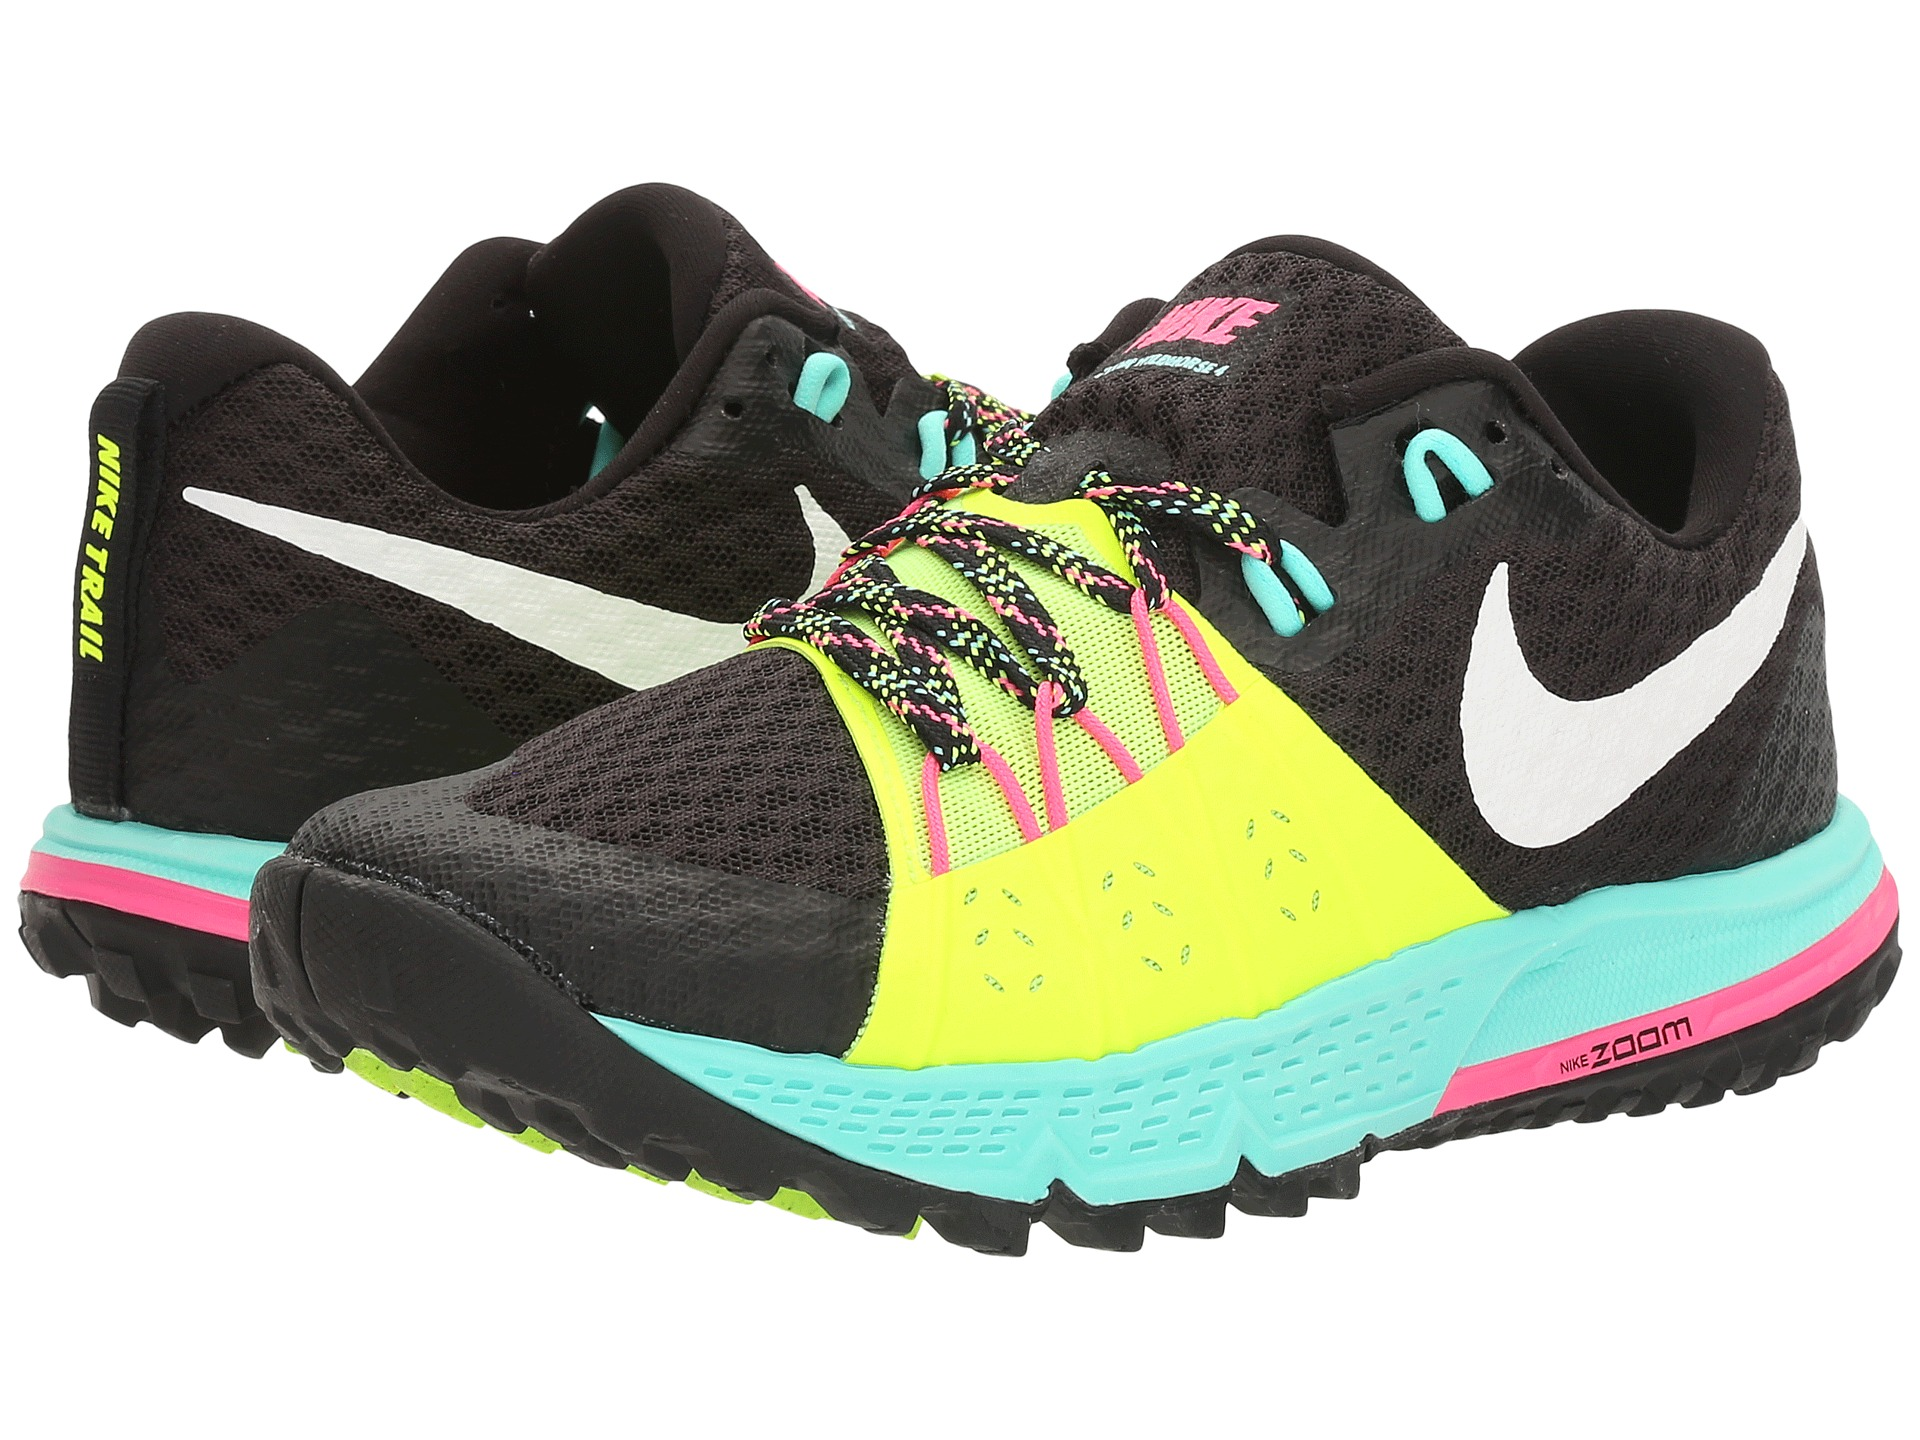 Nike Shoes Pink And Turquoise